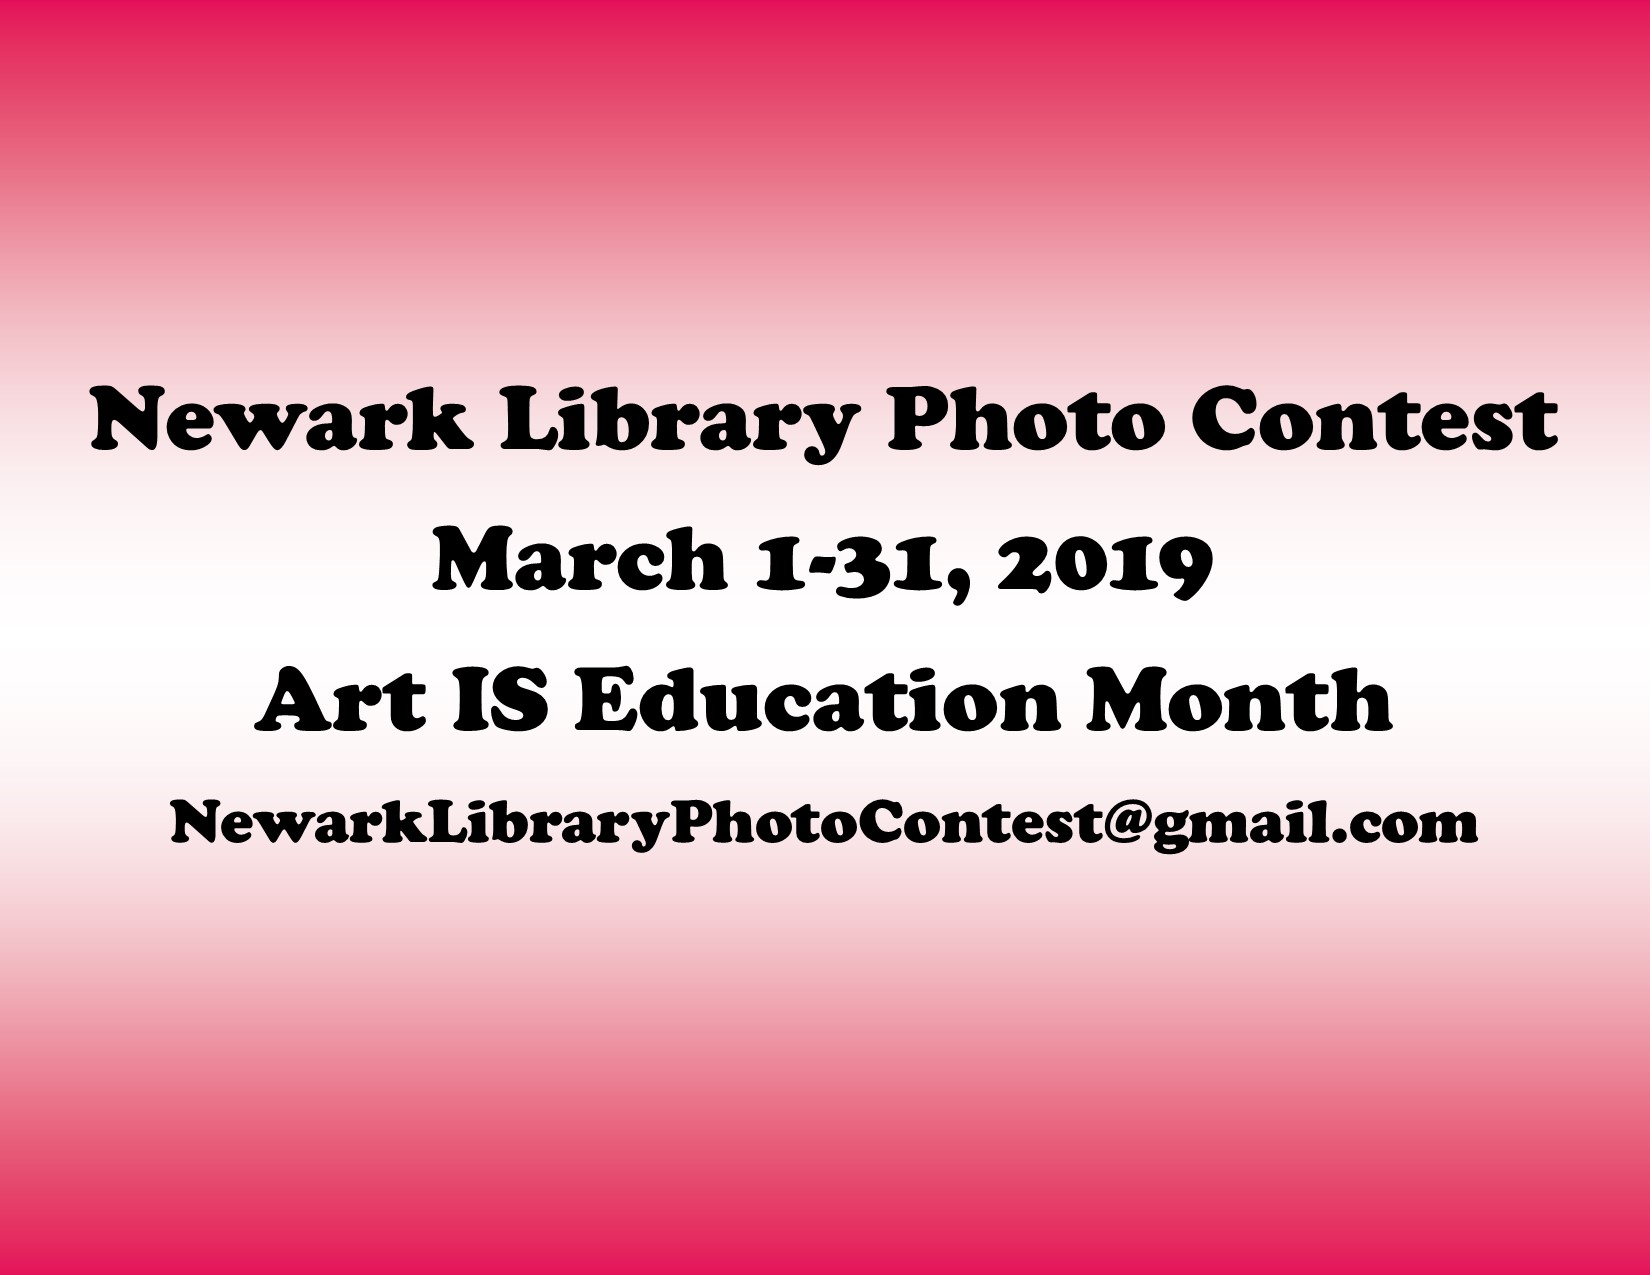 Newark Library Photo Contest